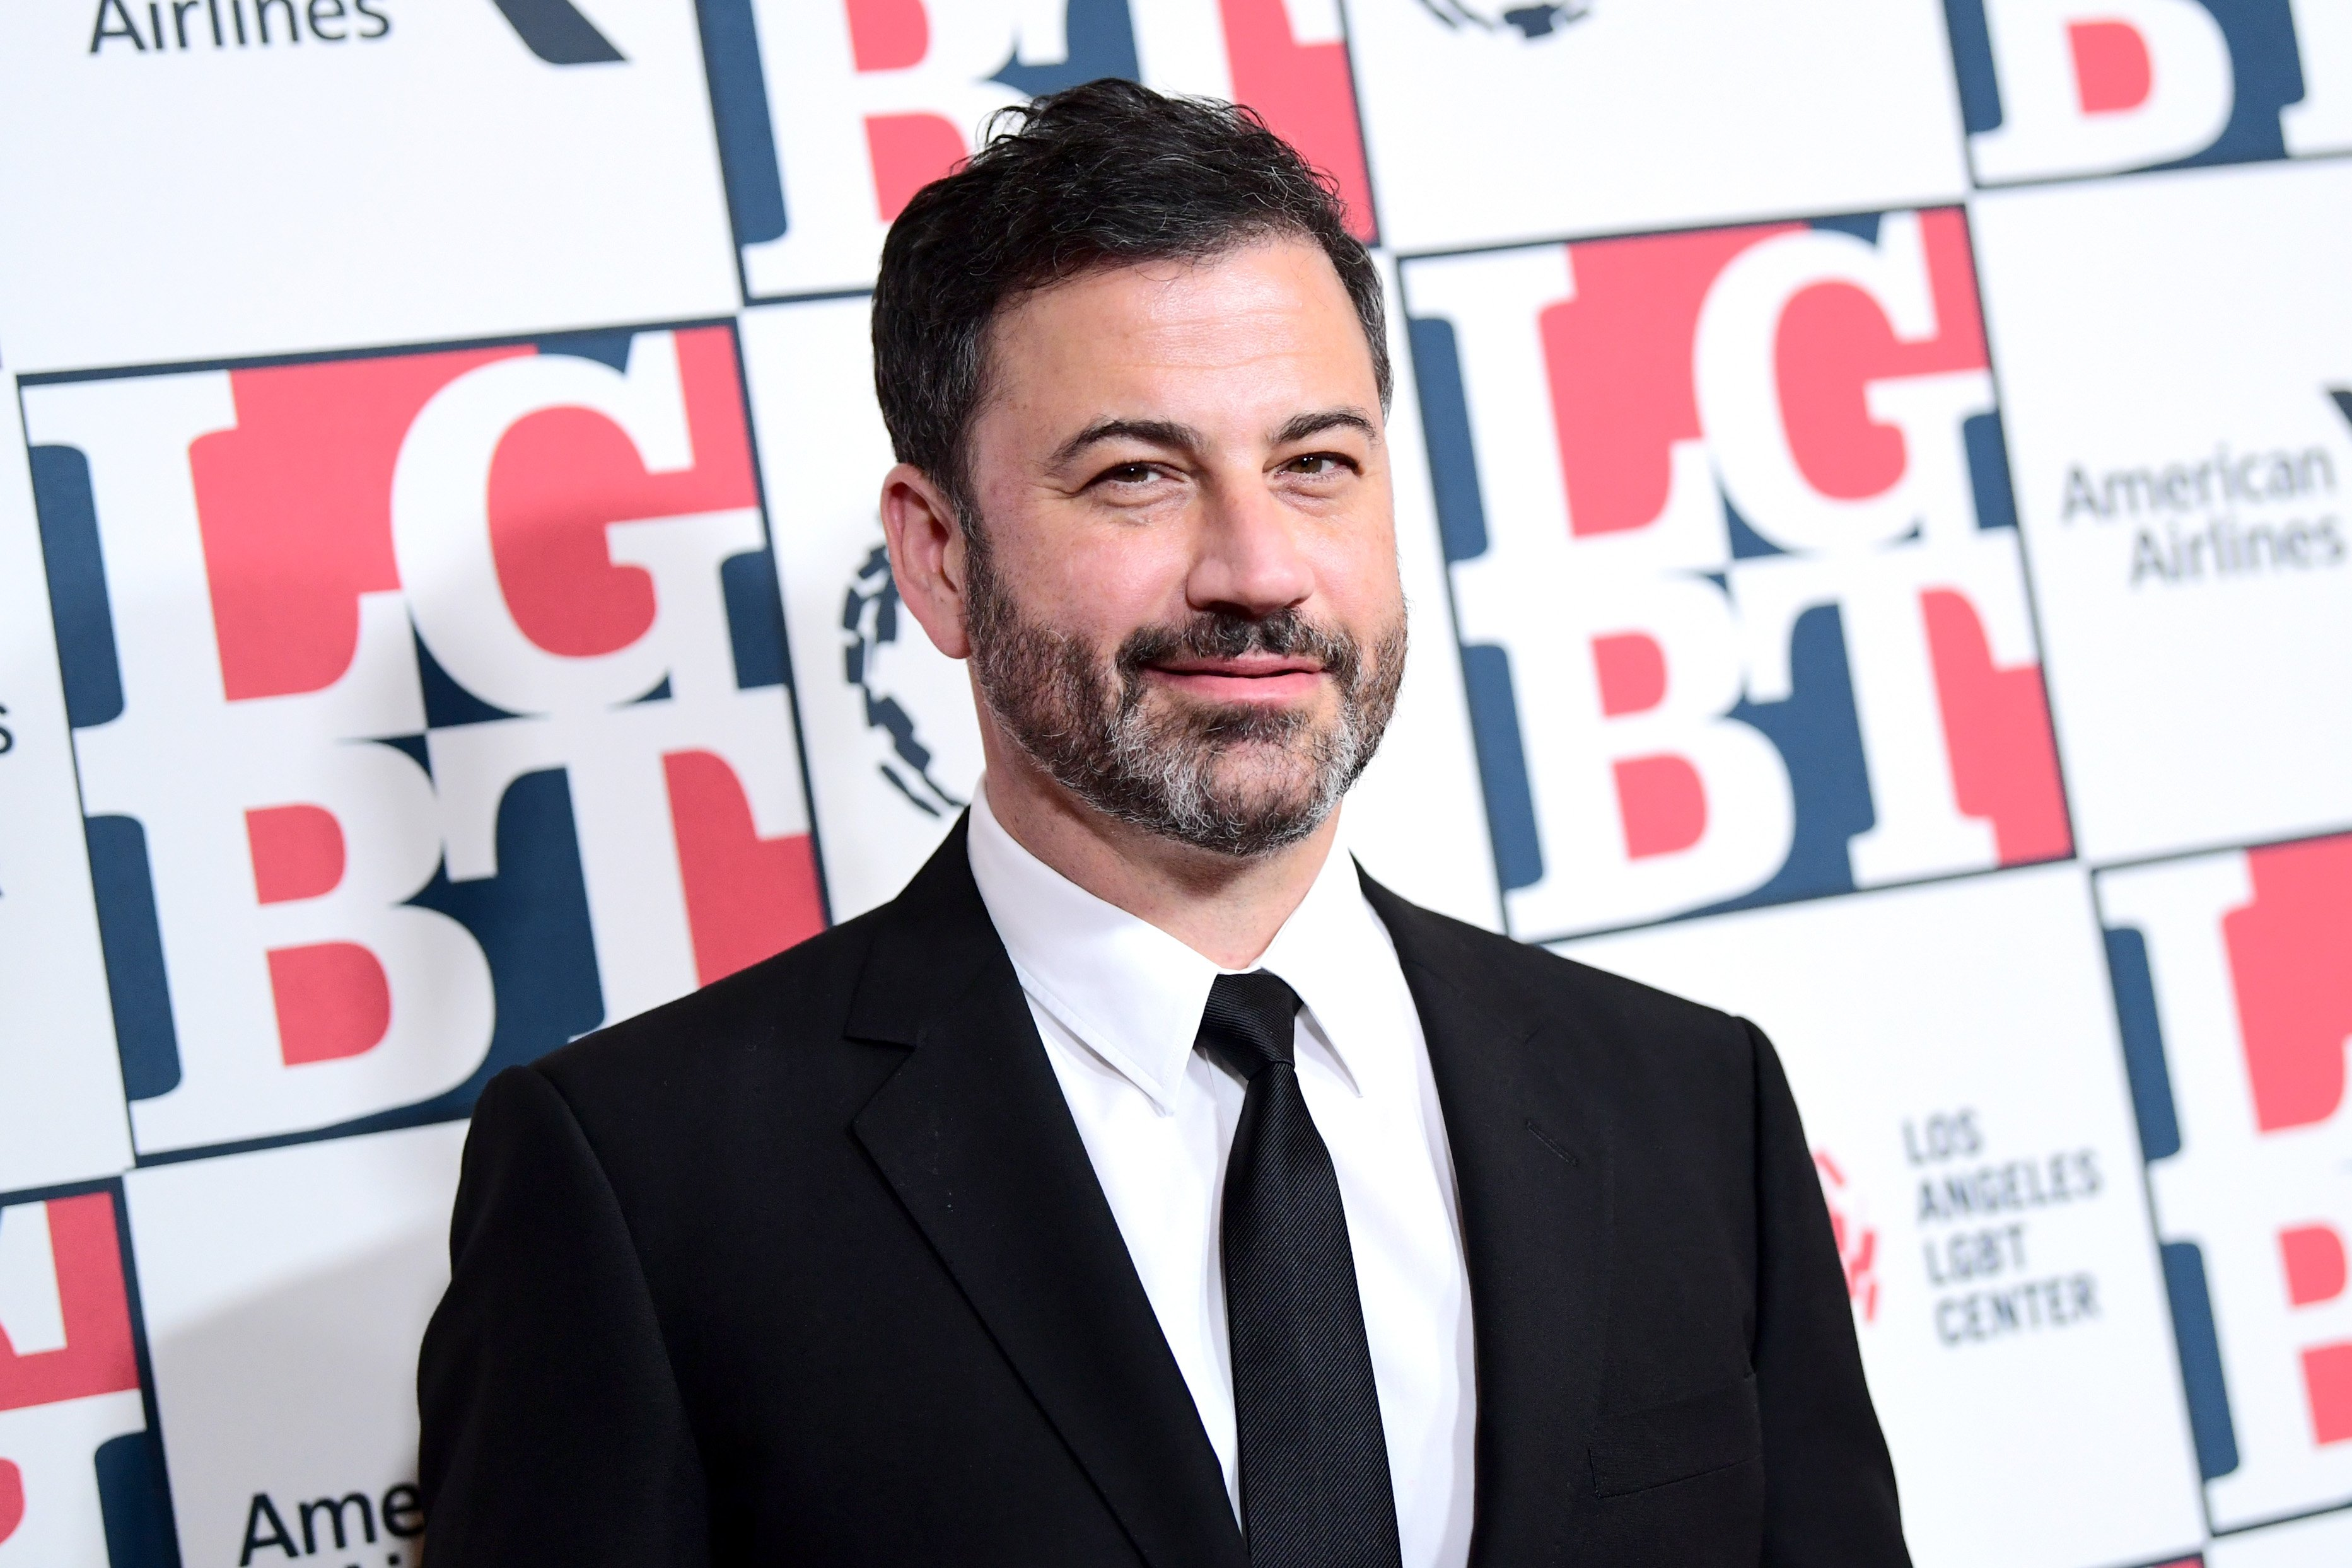 Jimmy Kimmel attends Los Angeles LGBT Center's 48th Anniversary Gala Vanguard Awards at The Beverly Hilton Hotel on September 23, 2017 in Beverly Hills, California   Photo: Getty Images